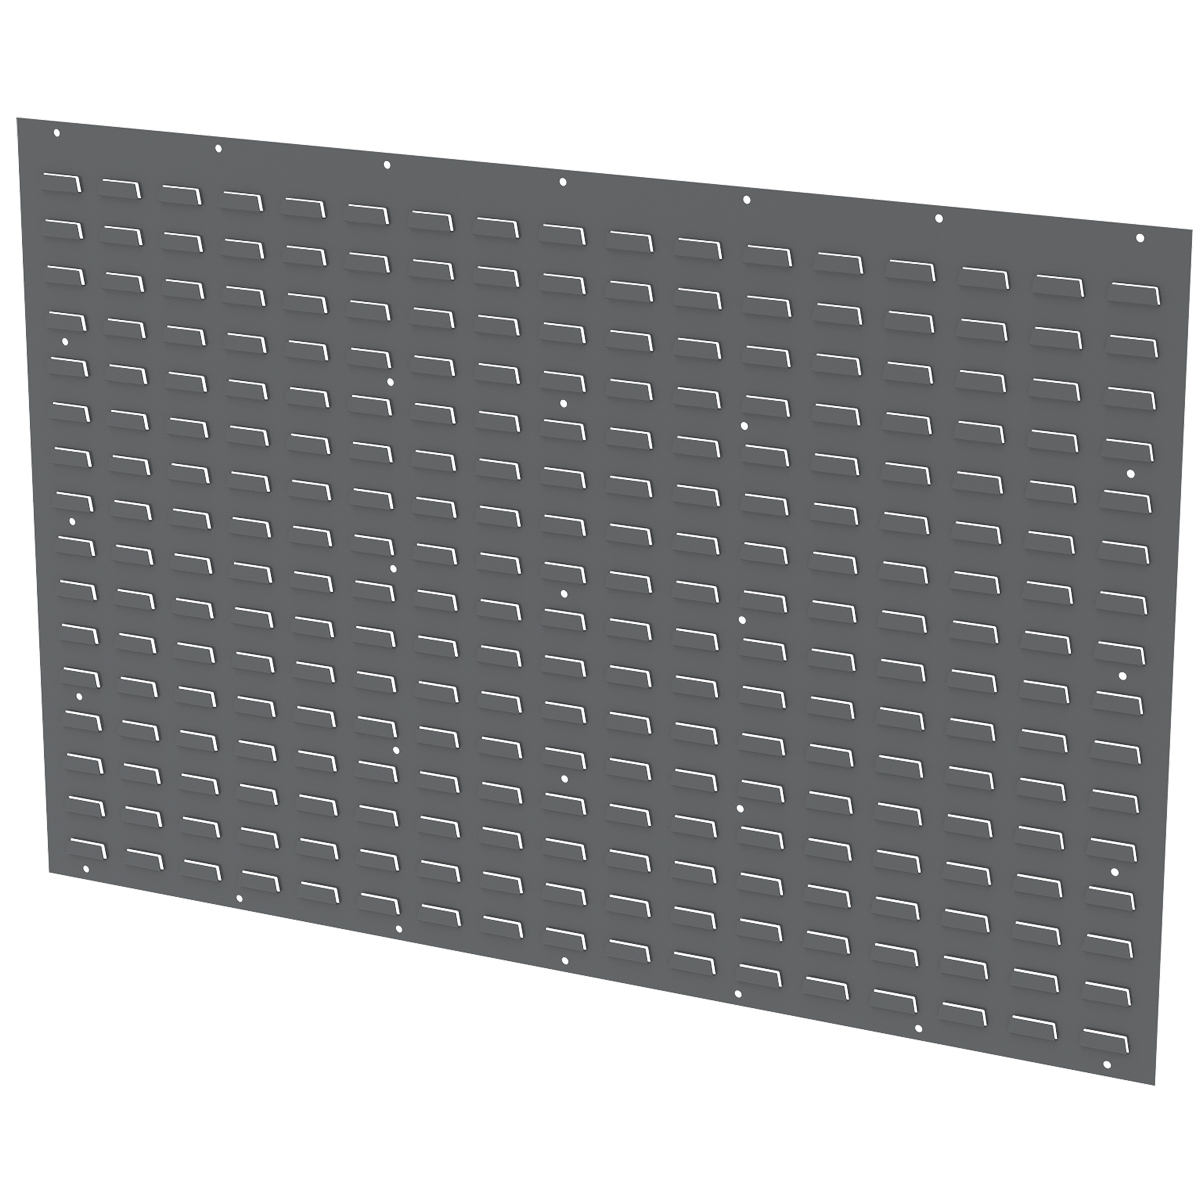 Louvered Wall Panel 52 x 34-1/8, Gray (30655GY).  This item sold in carton quantities of 1.